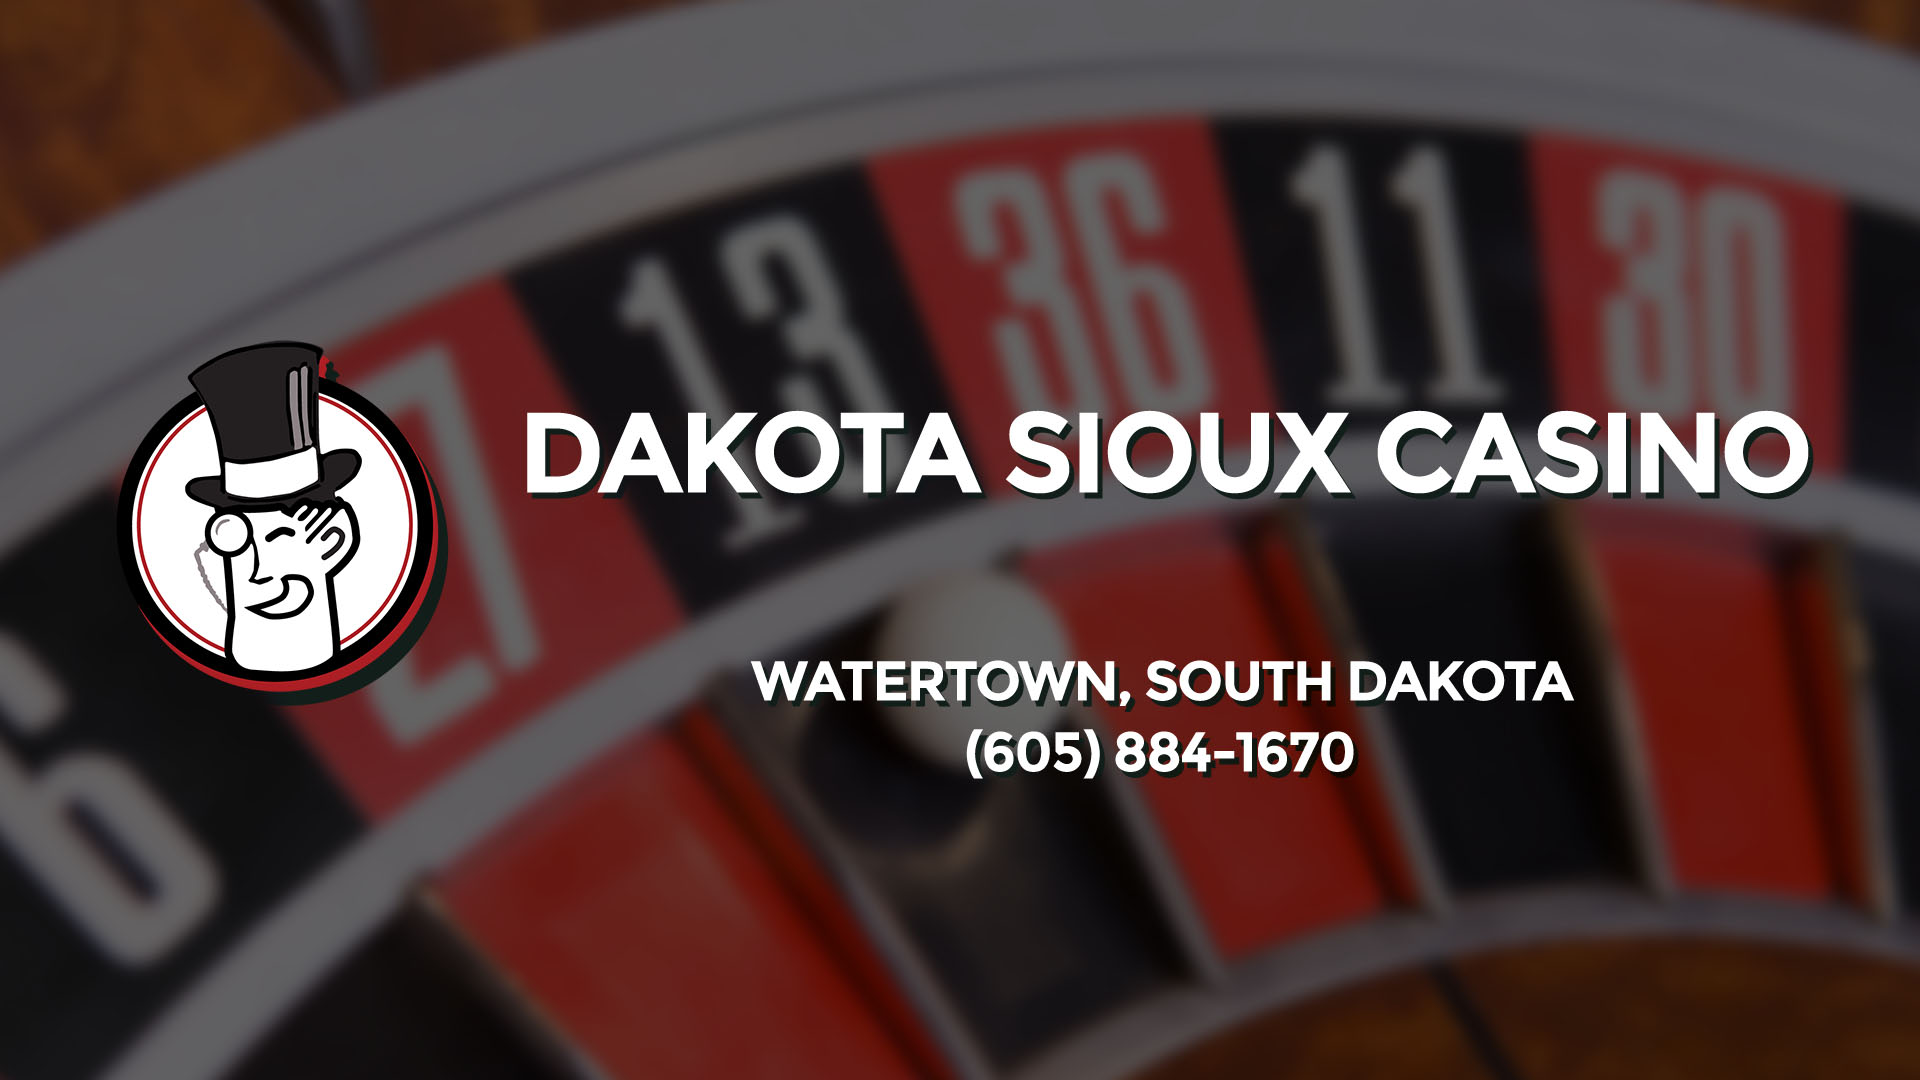 DAKOTA SIOUX CASINO WATERTOWN SD